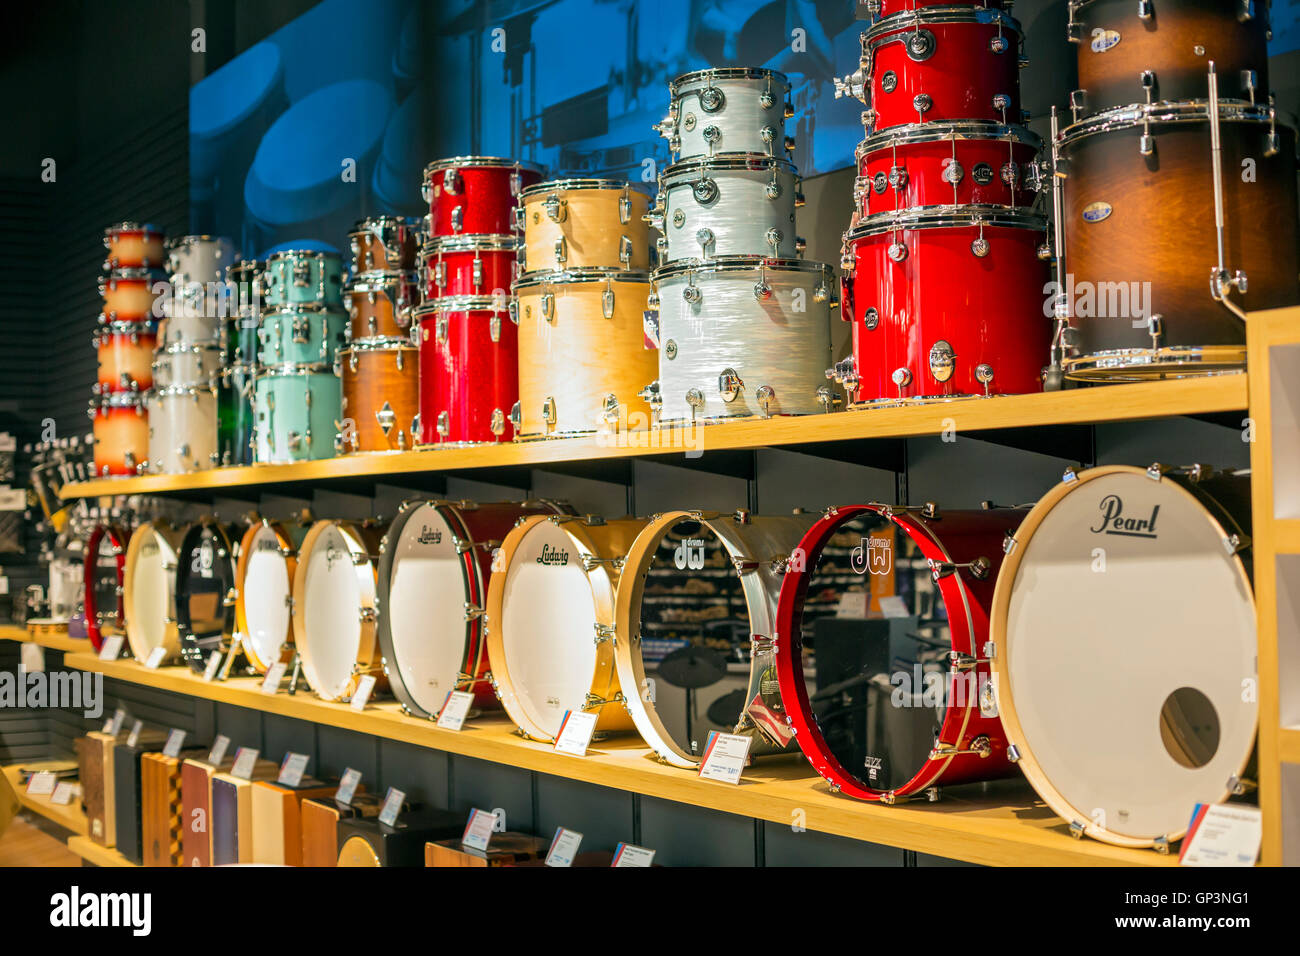 Sweetwater Music Location : fort wayne indiana drums on display at the sweetwater music stock photo 116867409 alamy ~ Vivirlamusica.com Haus und Dekorationen